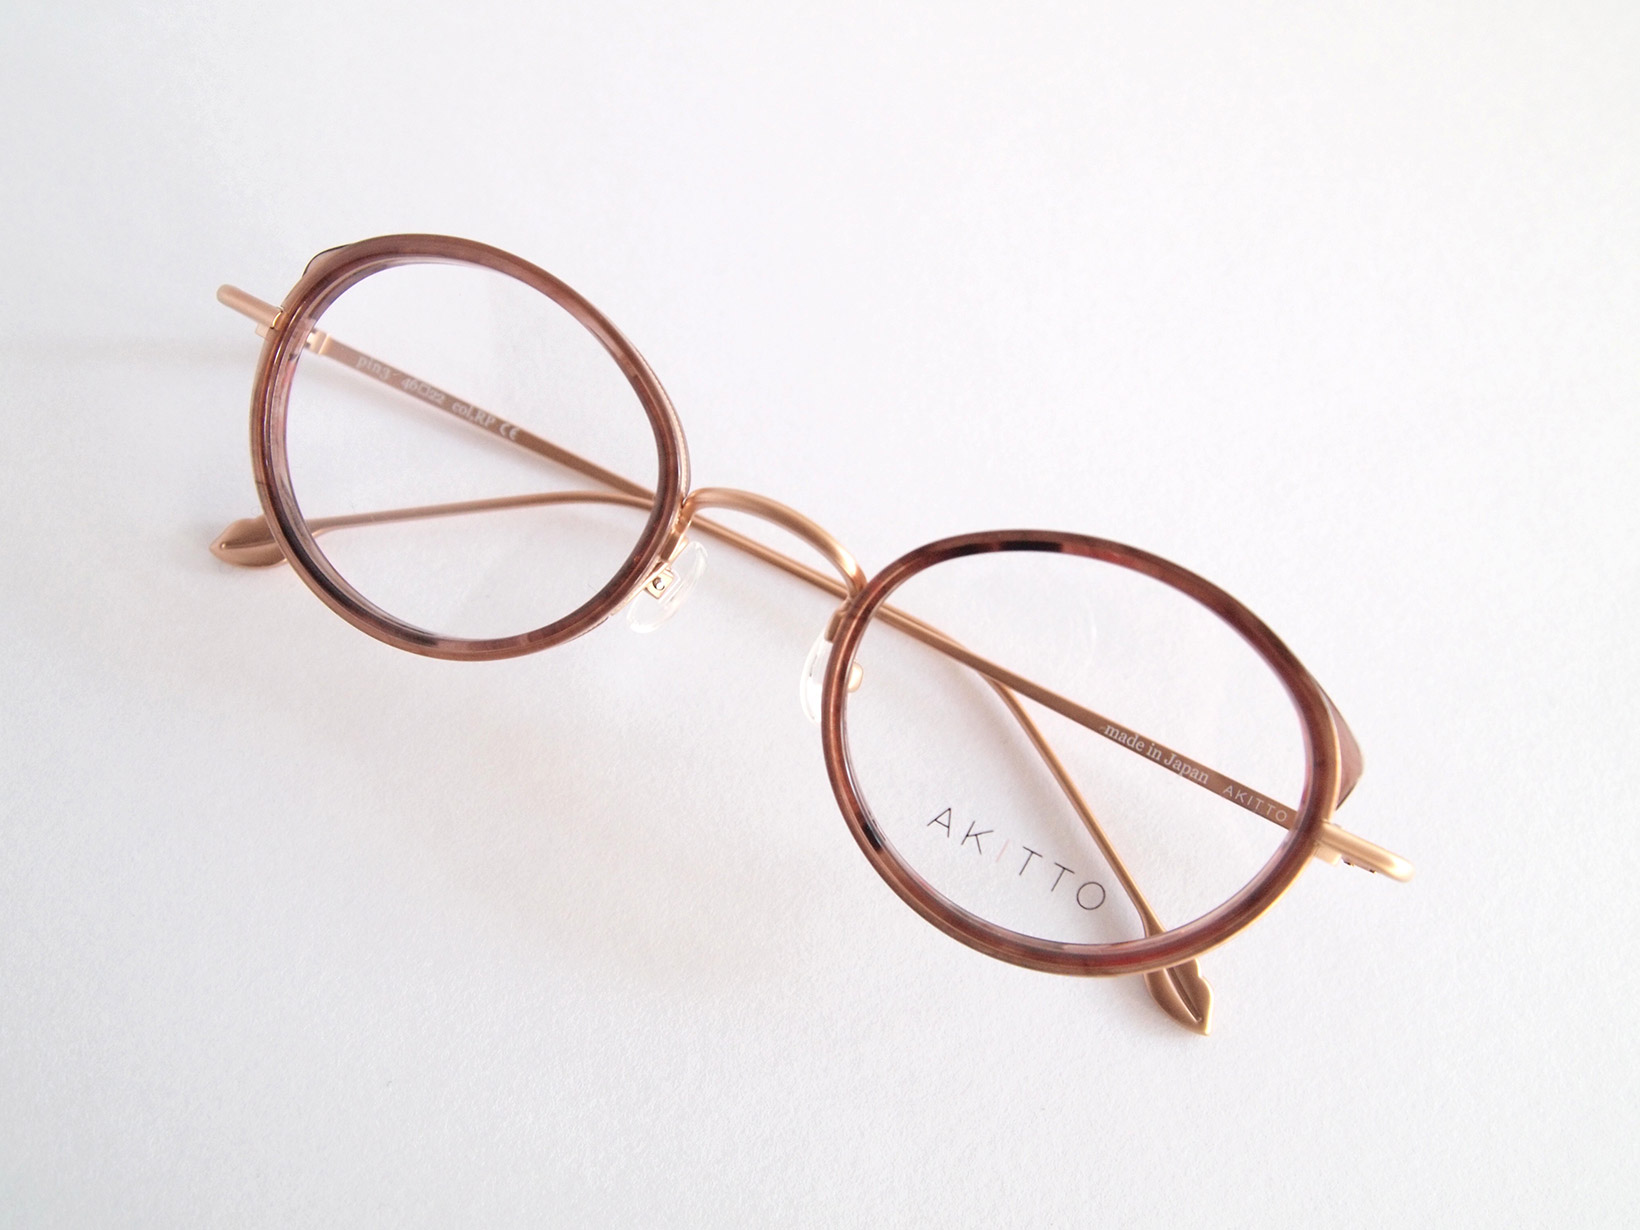 AKITTO 2018-1st pin3 color|RP size:46□22 material:titanium+acetate price:42,000-(+tax)